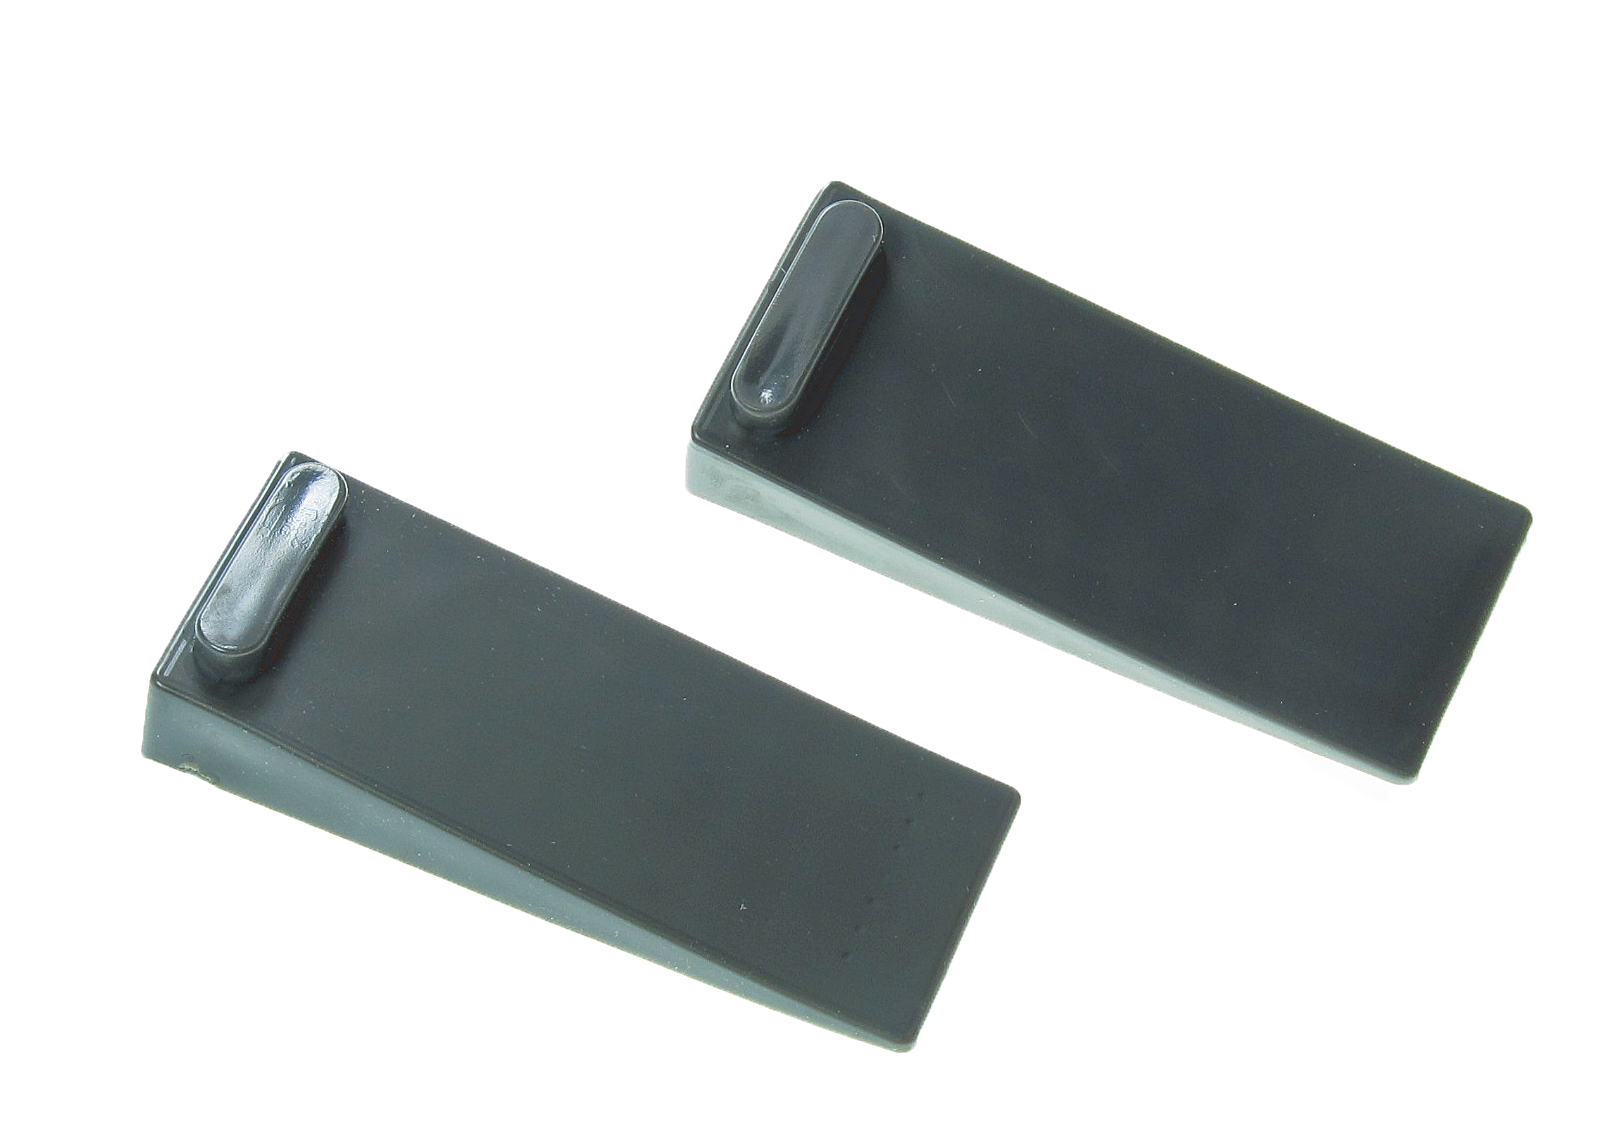 2 x black thick rubber door stop stopper wedge jam jammer stoppers sydney ebay - Door stoppers rubber ...